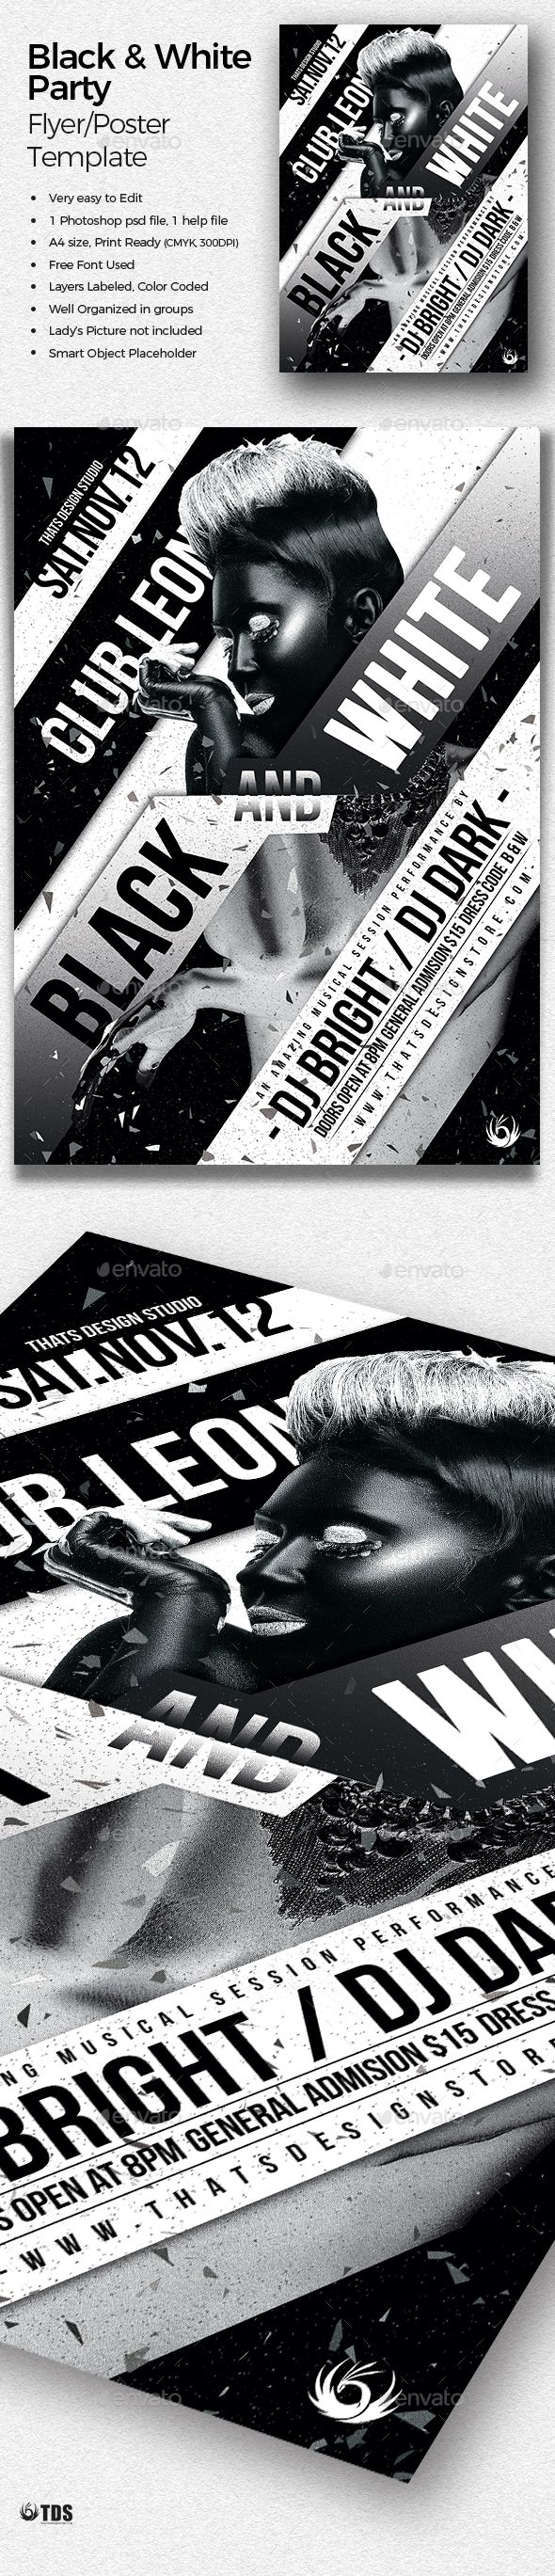 Black And White Party Flyer Template Color Thatsdesign Download